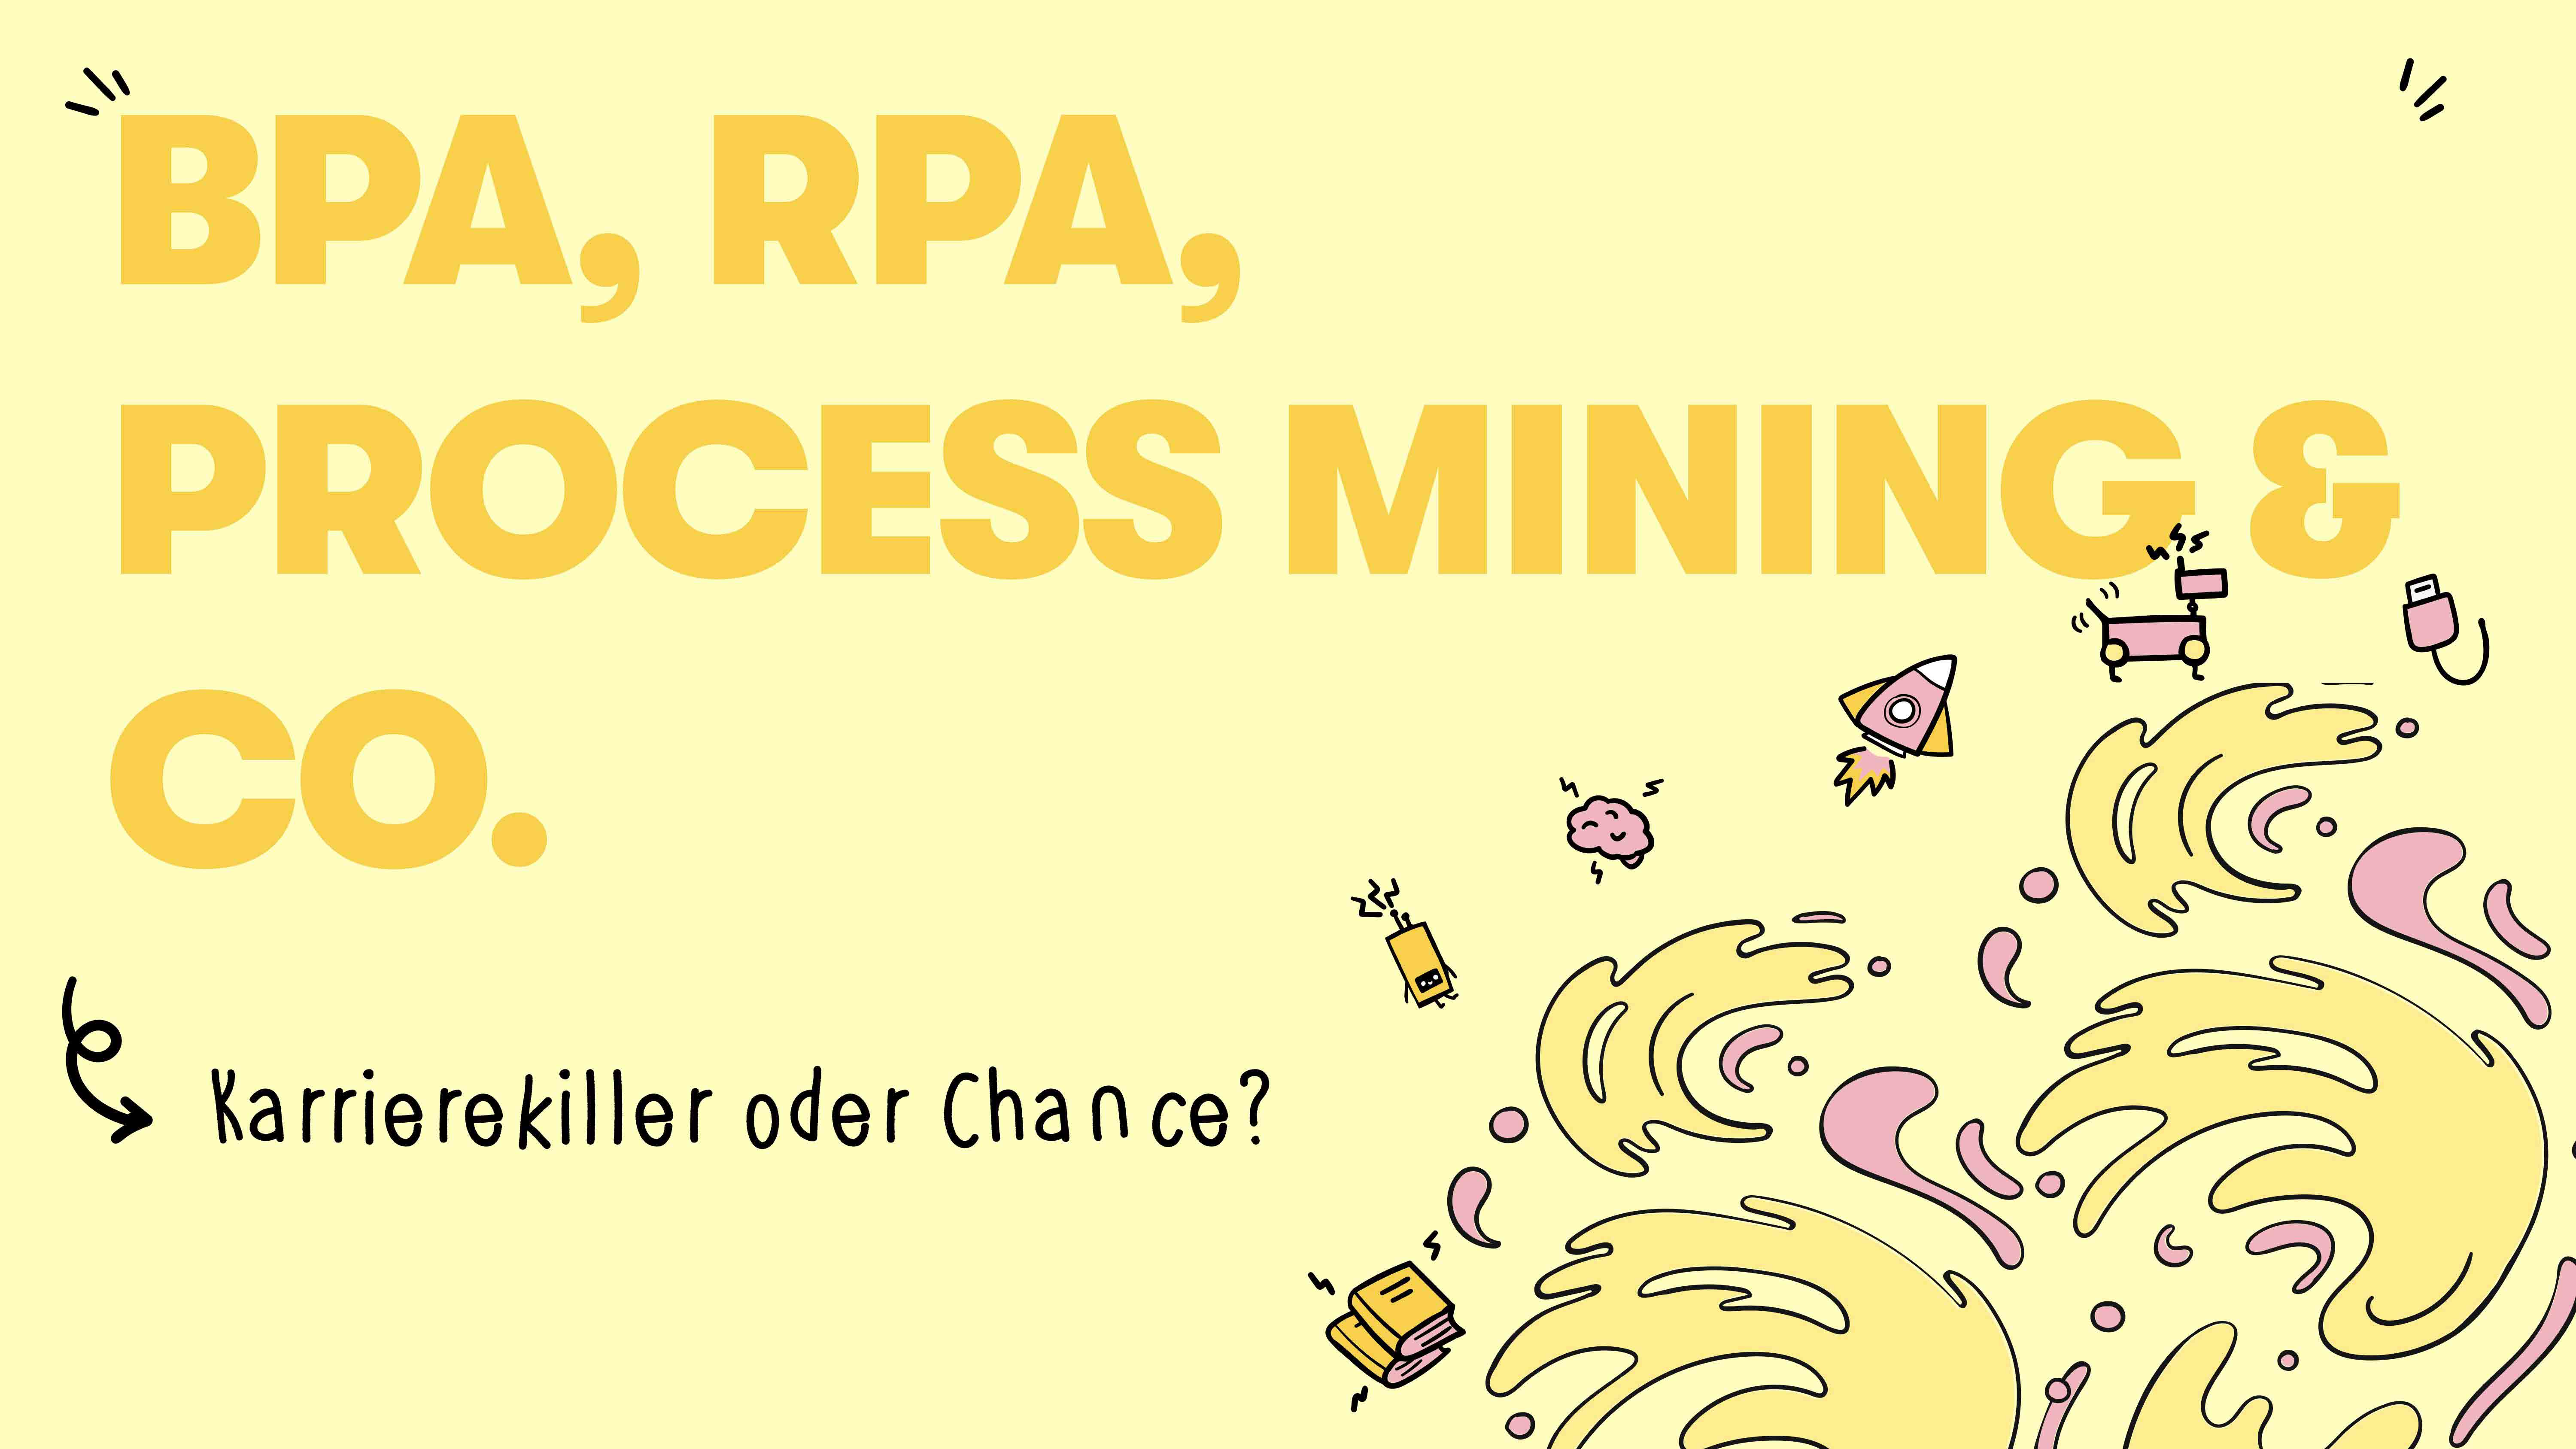 BPA, RPA, Process Mining & Co: Karrierekiller oder Chance?